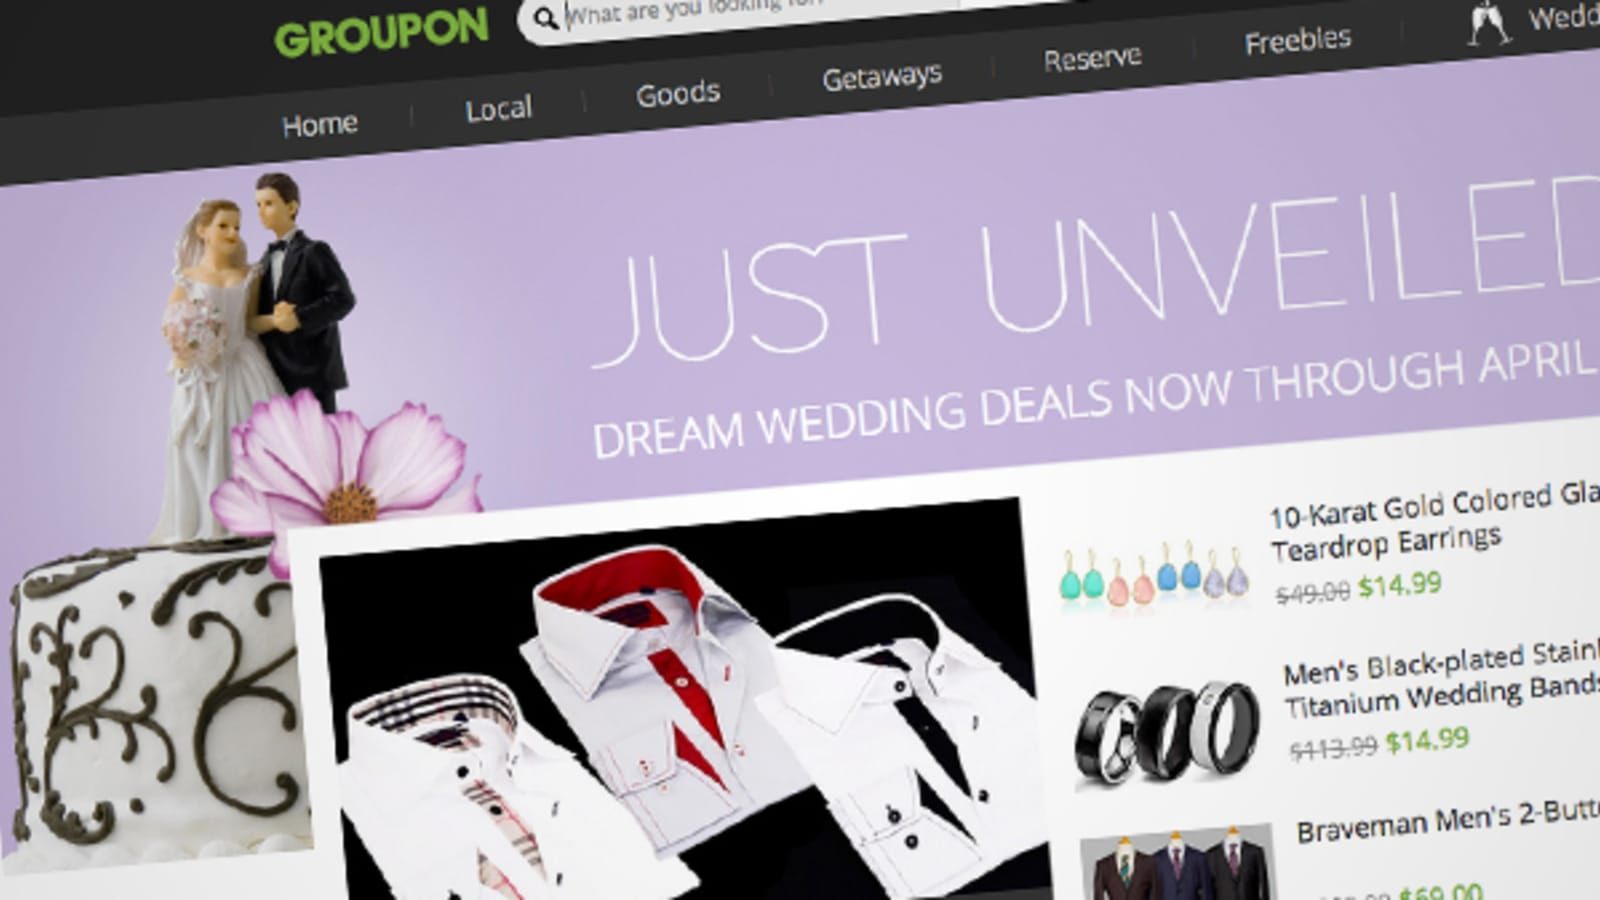 Groupon Lets You Save 10k On Your Engagement Ring